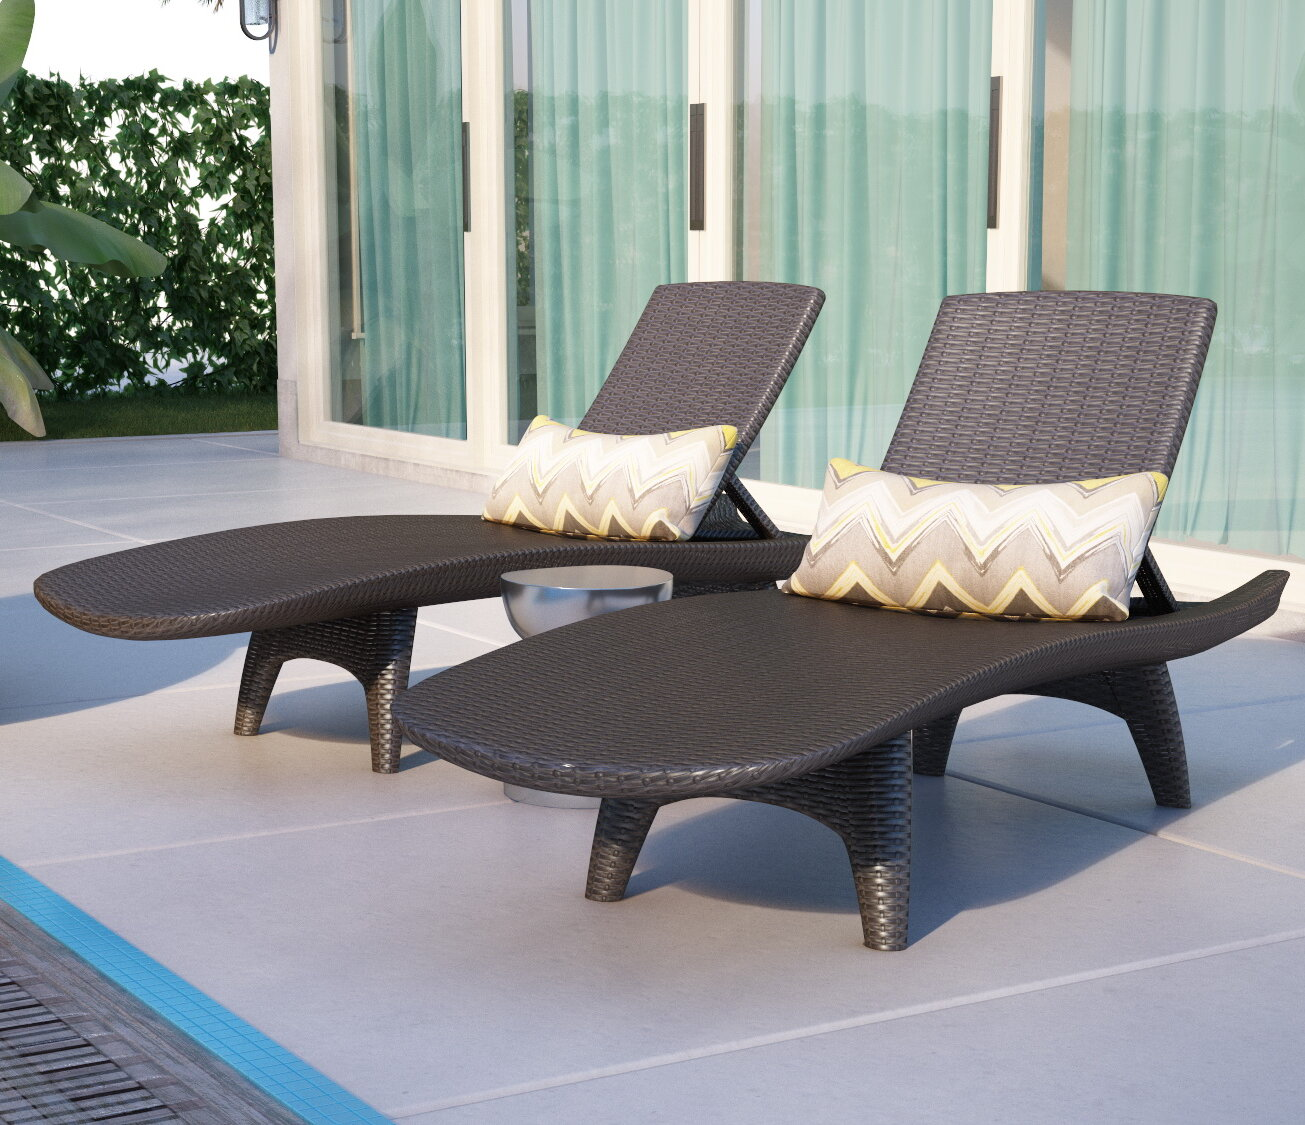 ottoman pictures chair outdoor and footstools hidden wicker patio with marvelous furniture design